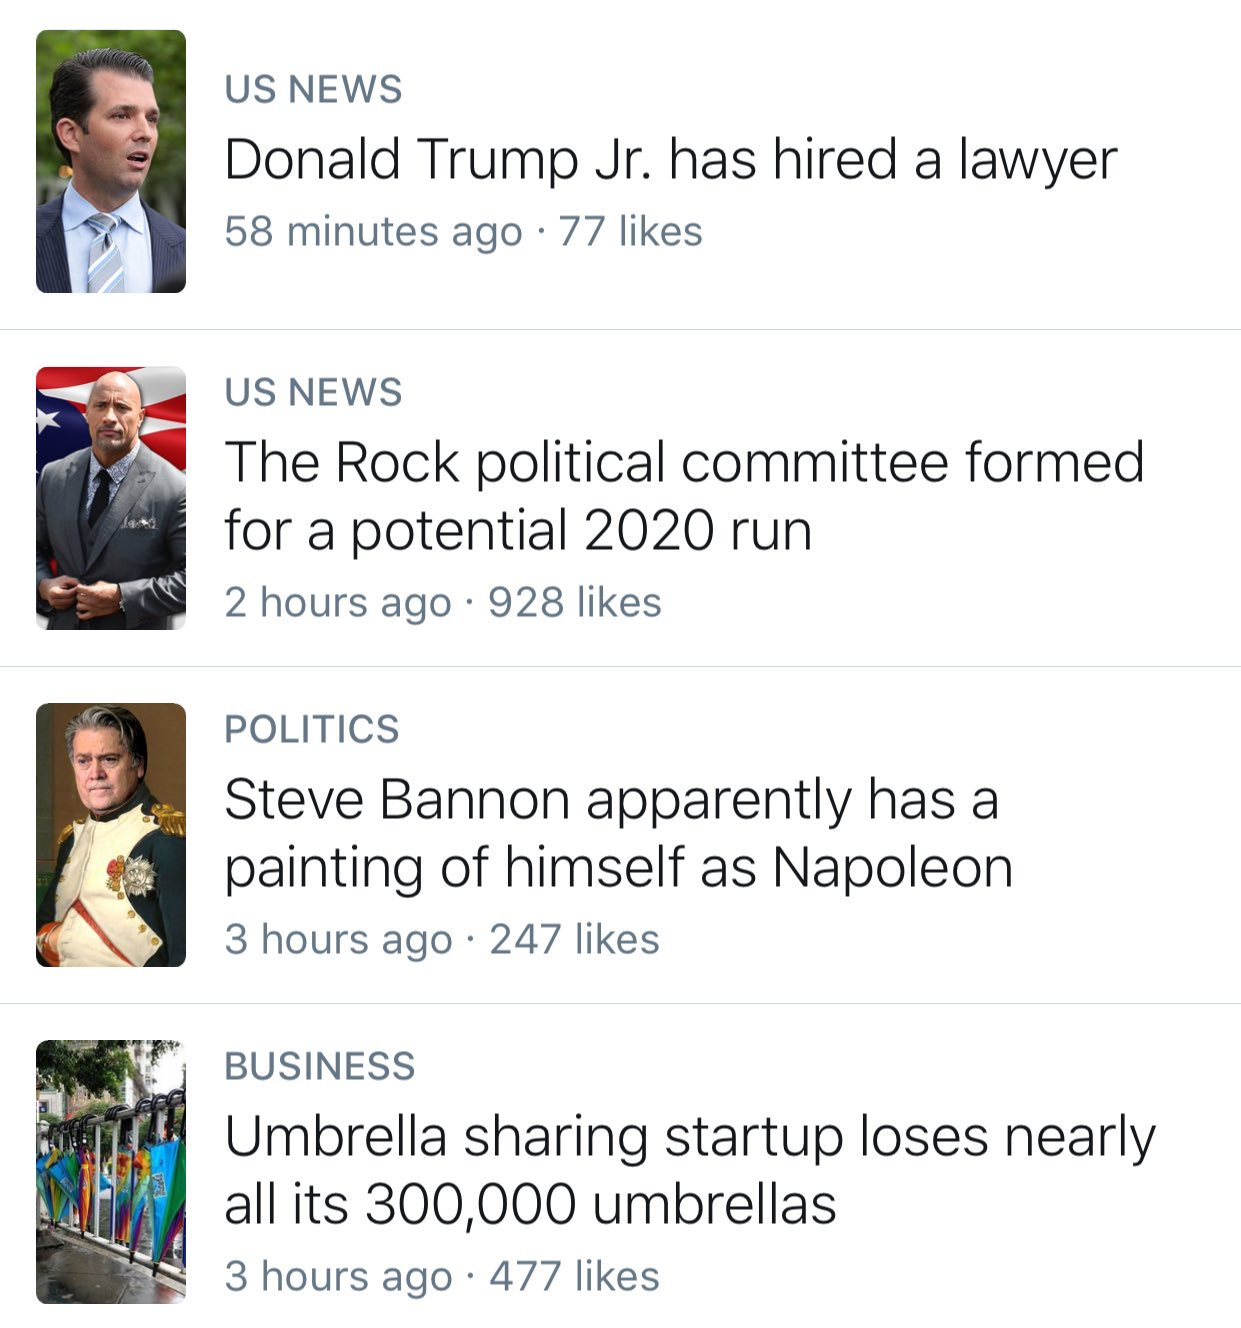 Saving this screenshot for when my grandkids ask me what 2017 was like. https://t.co/oFt0Nm86wP